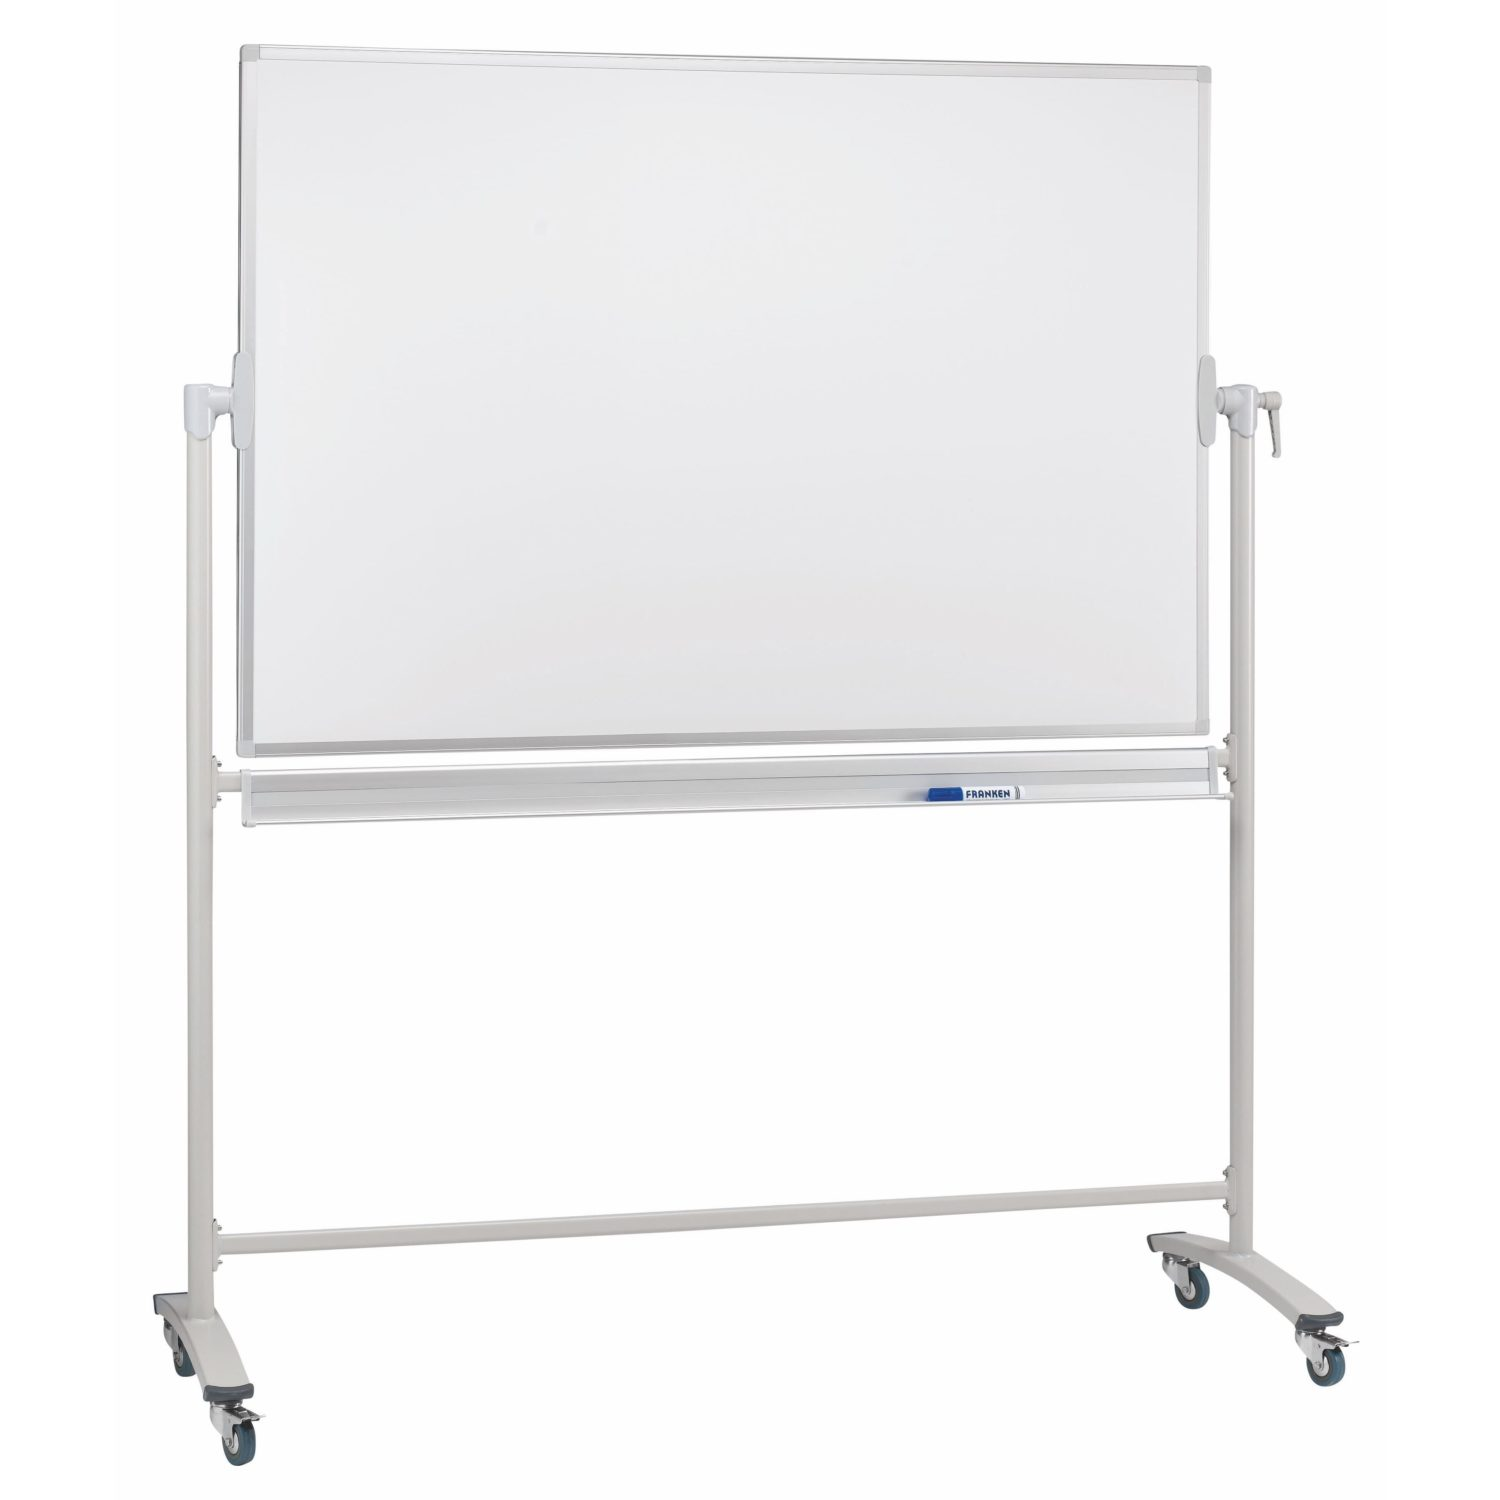 Franken Revolving Magnetic Whiteboards - Noticeboards Online